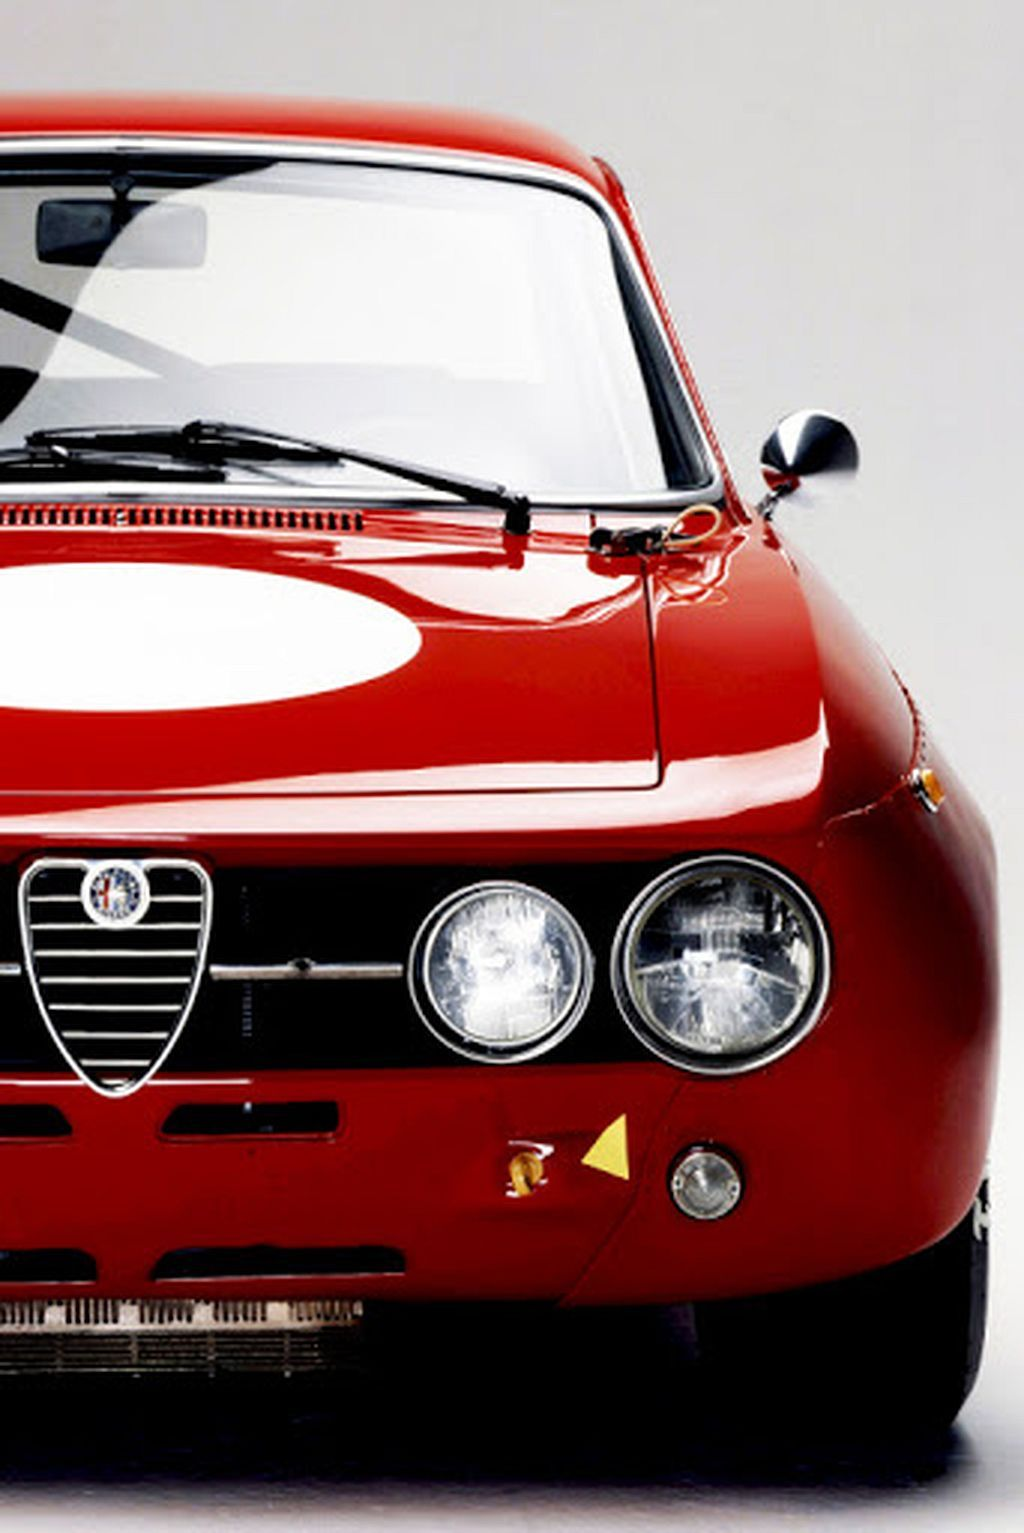 Alfa Romeo Gtam Special Pictures For You Https Www Mobmasker Com Alfa Romeo Gtam Special Pictures For You Alfa Romeo Alfa Romeo Gta Sports Cars Luxury